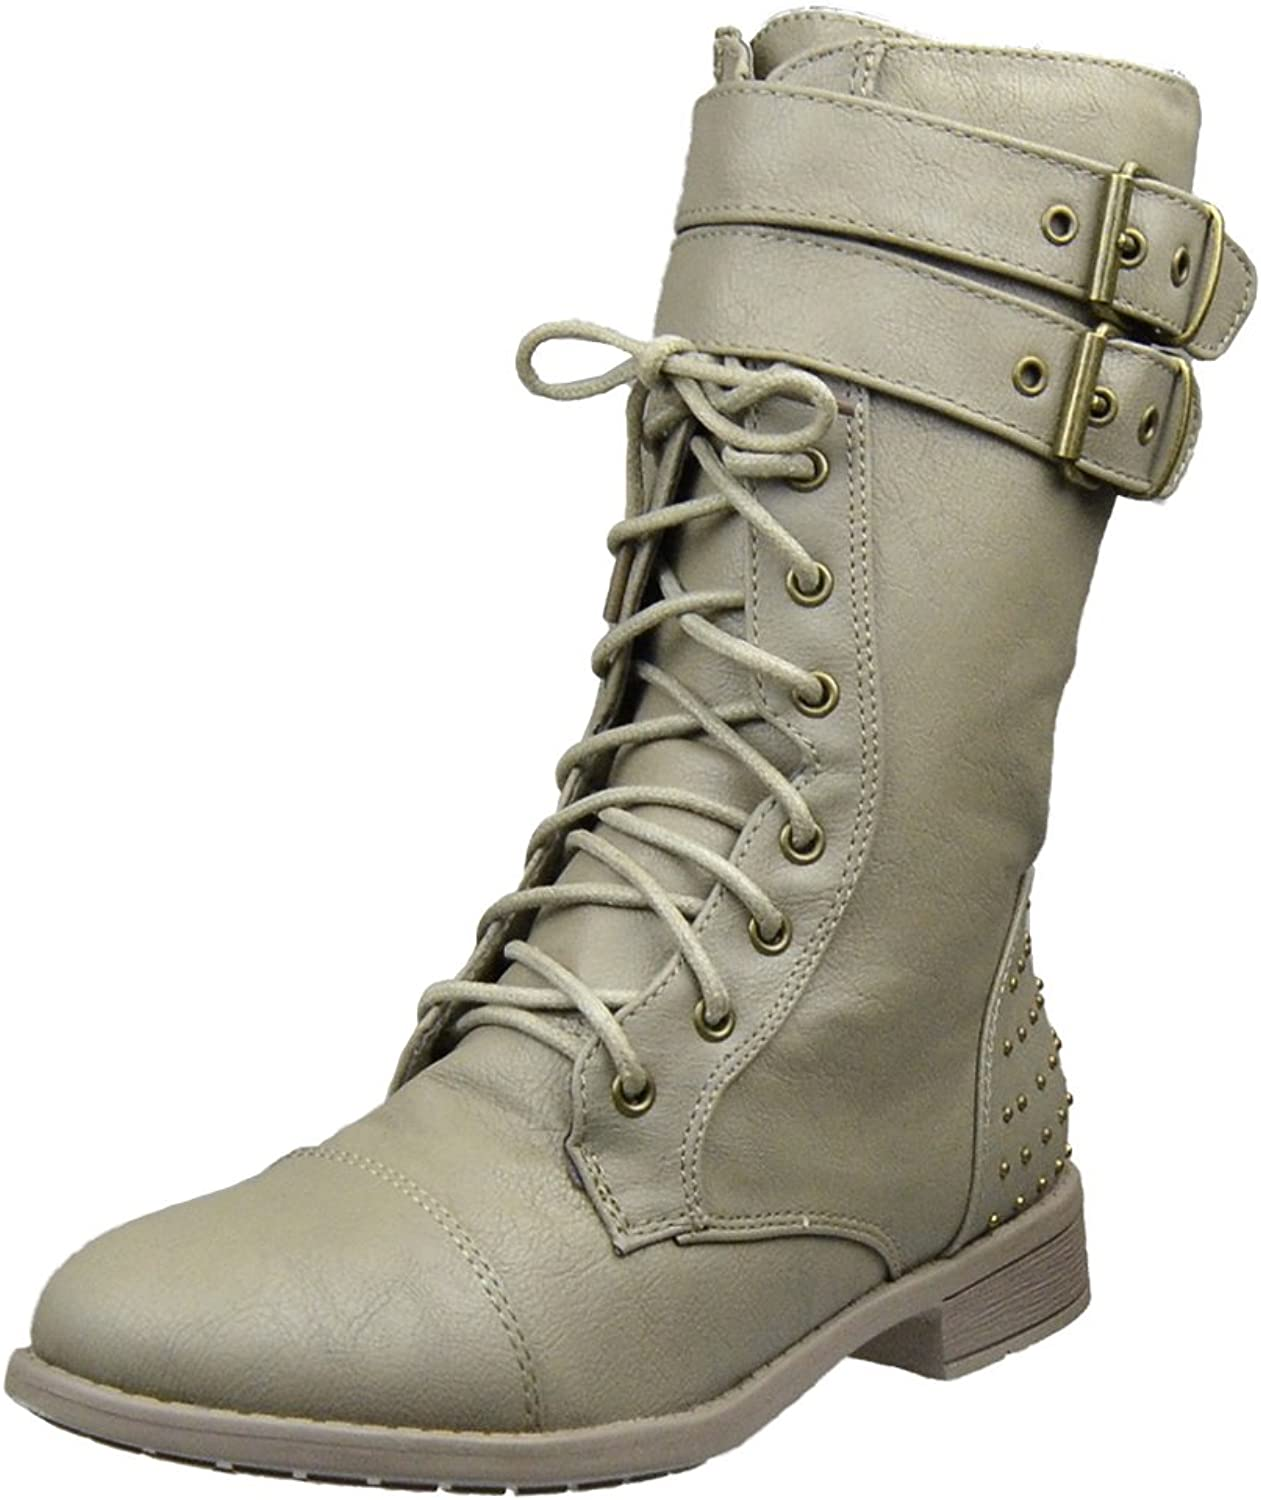 FL By KSC Womens Ankle Boots Buckle Accent Studs Lace Up Combat Boots